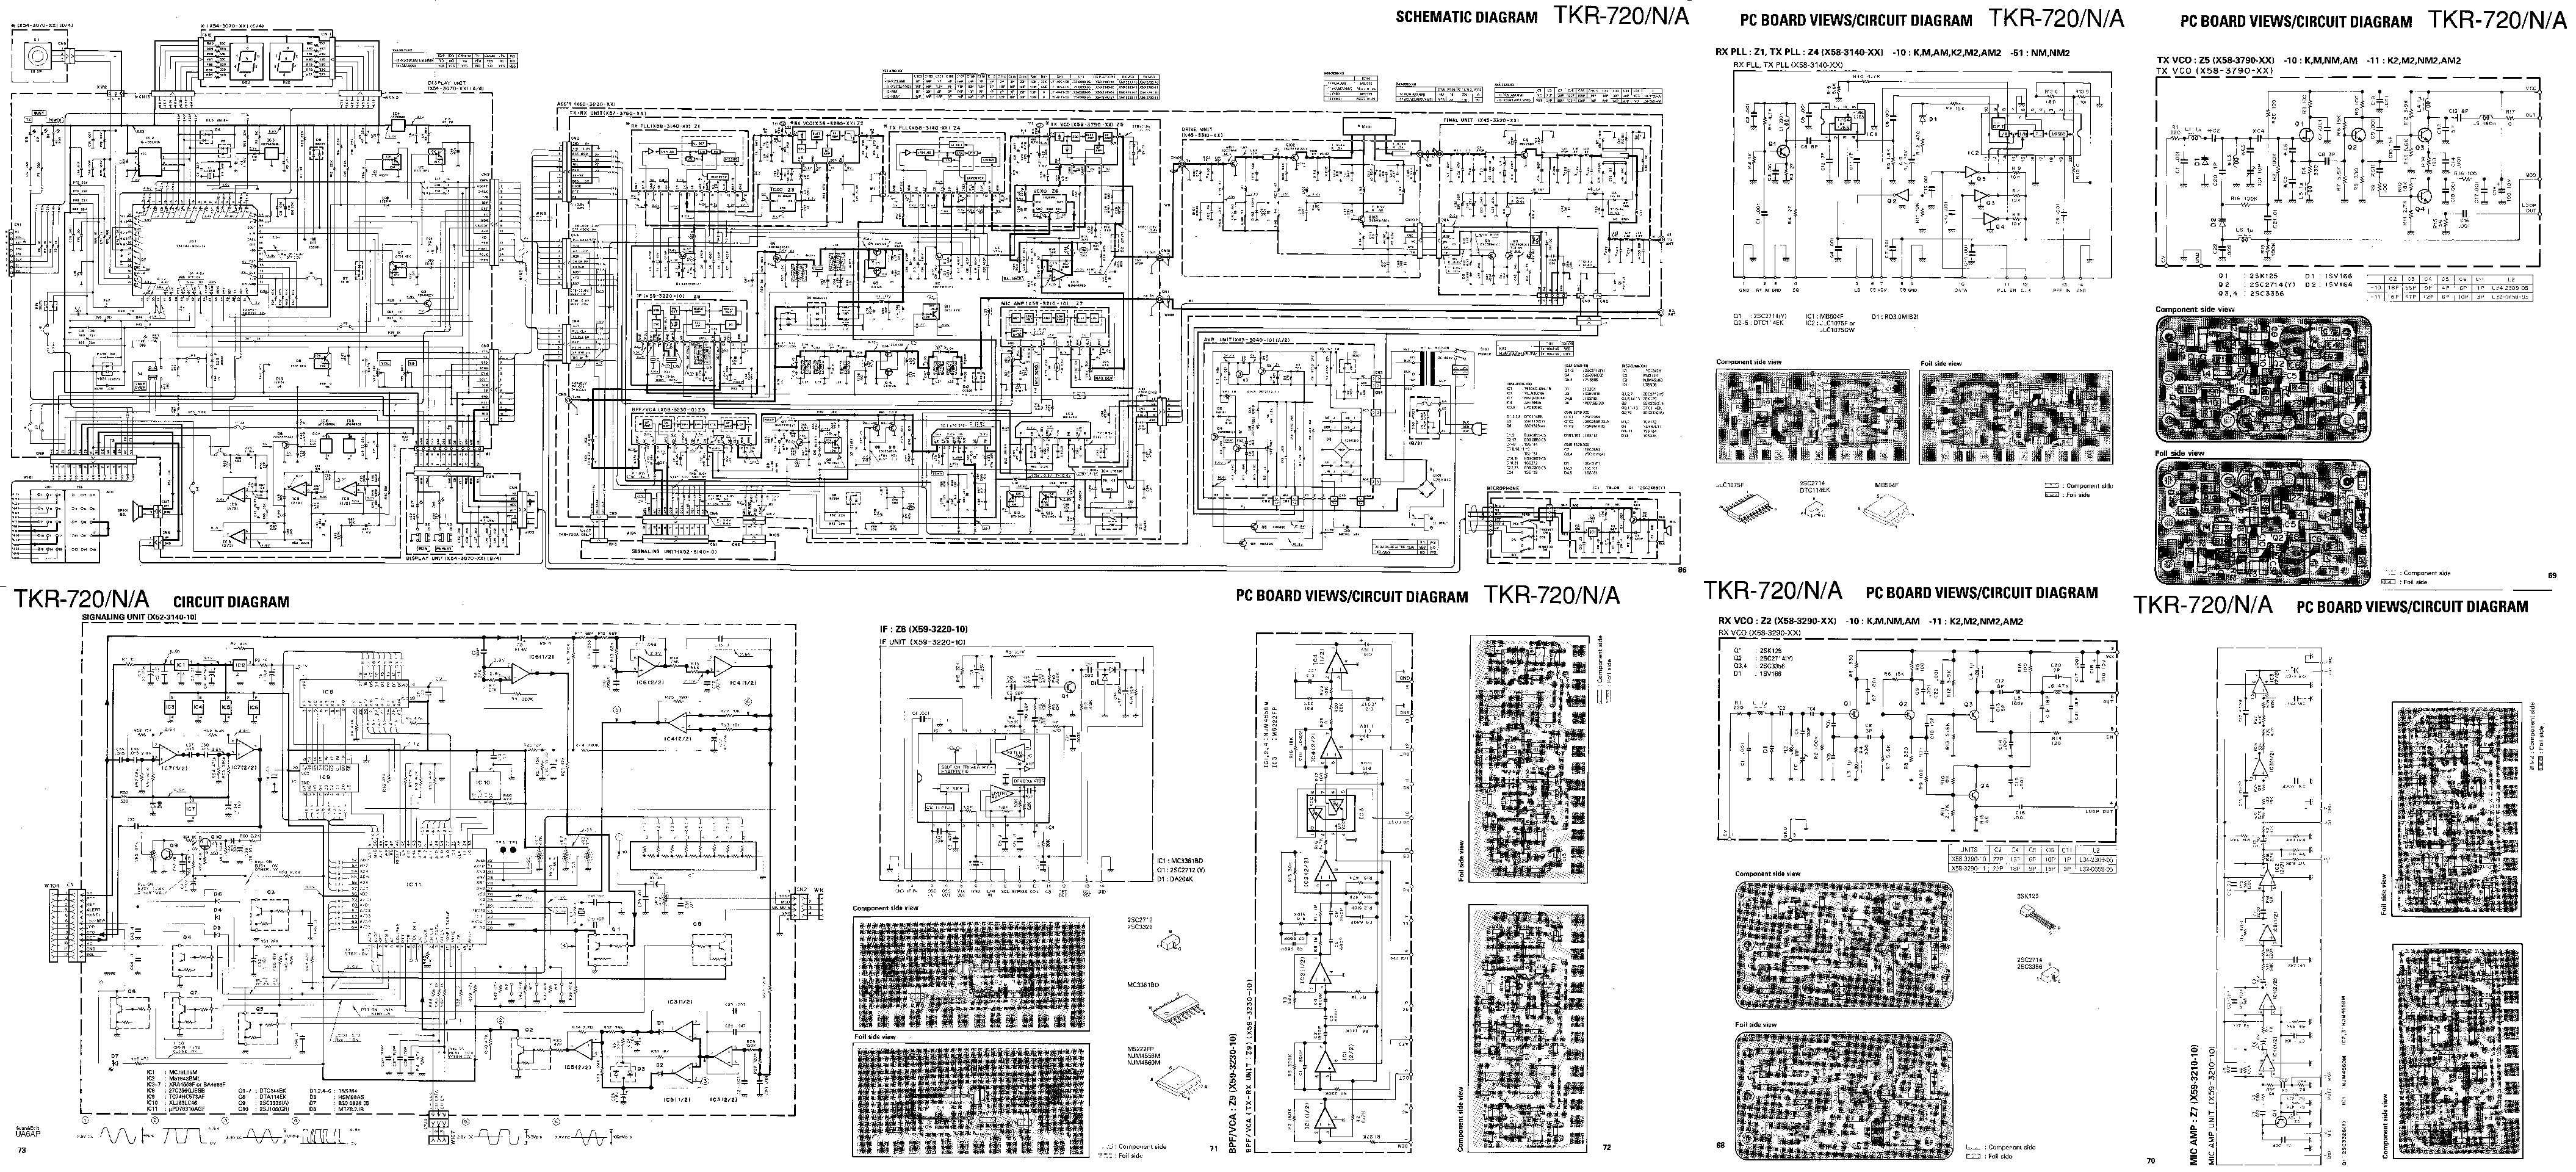 Wiring Diagram Kenwood Kdc 2022 Diagrams For X395 Harness Plug Car Stereo 252u